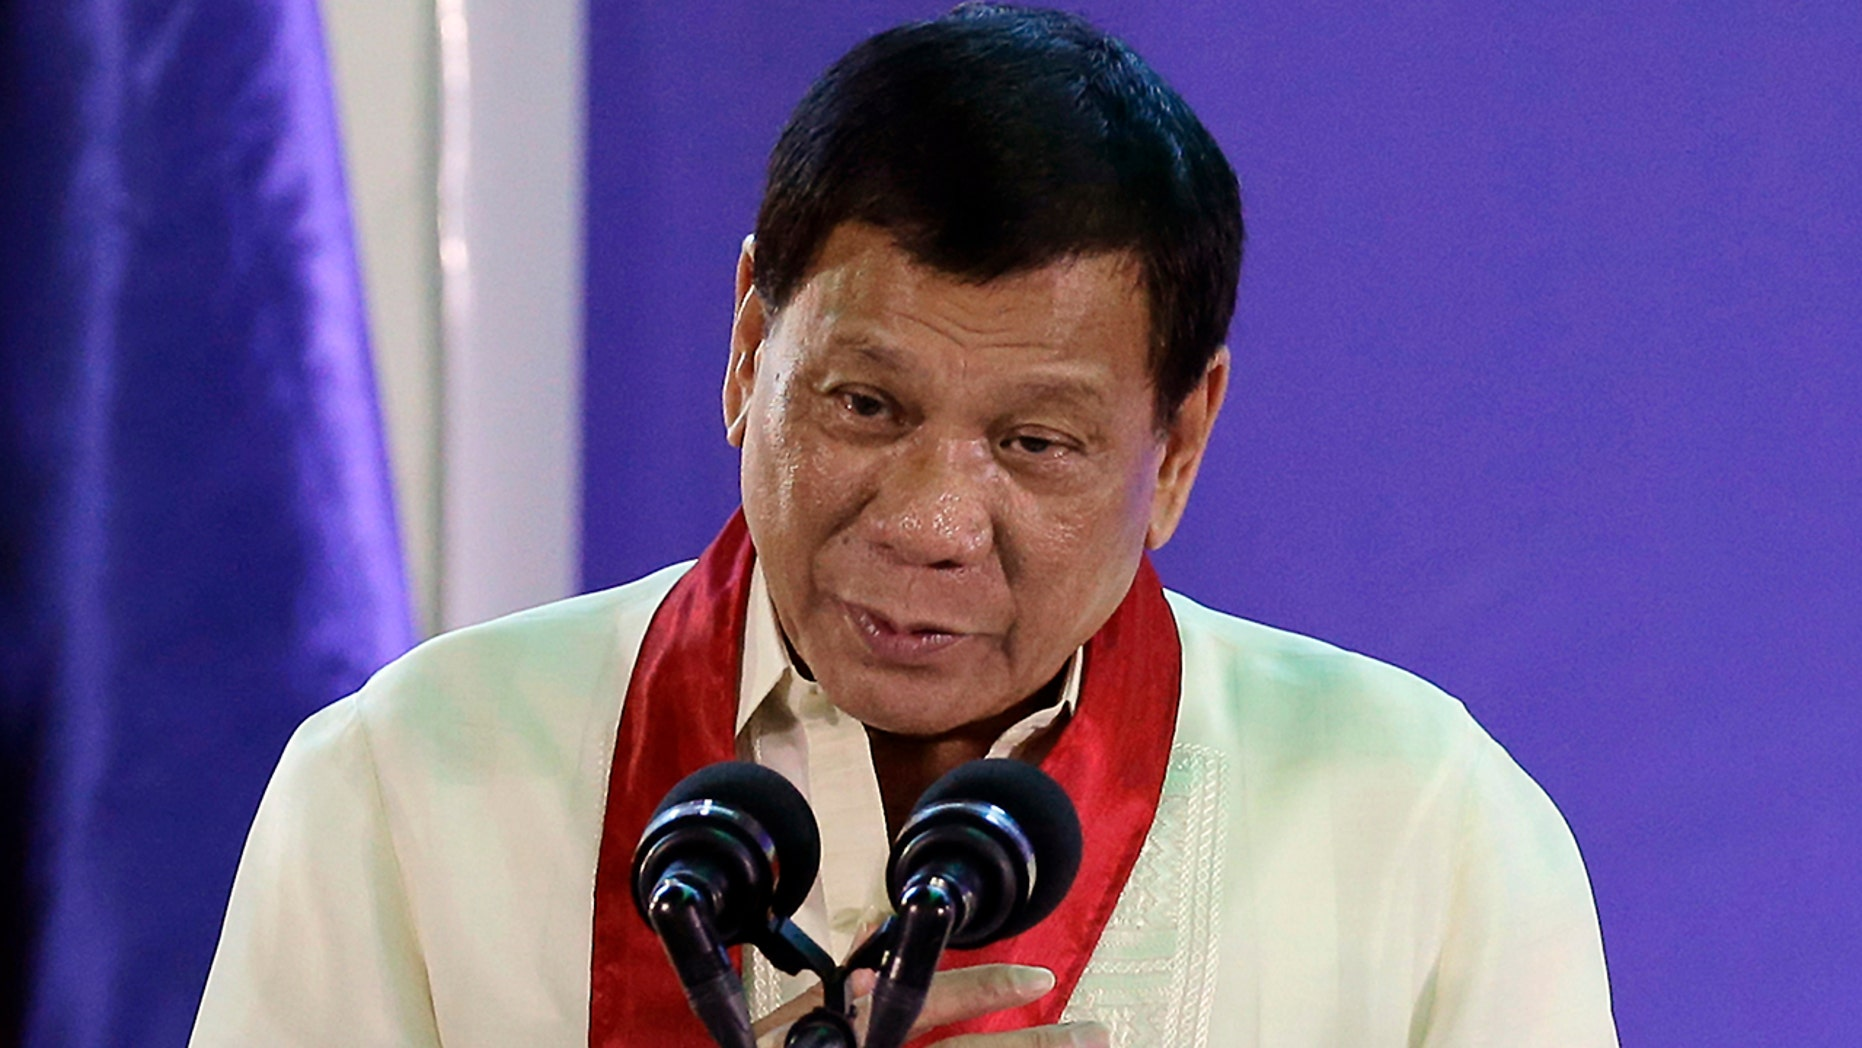 FILE - In this Aug. 2, 2017 file photo, Philippine President Rodrigo Duterte speaks during the 113th Founding Anniversary of the Bureau of Internal Revenue in metropolitan Manila. The Philippine president says he became a local millionaire at a young age due to inheritance and reiterated he has no unexplained wealth as alleged by his leading critic, who questioned his claim that he was born into an impoverished family. (AP Photo/Aaron Favila, File)